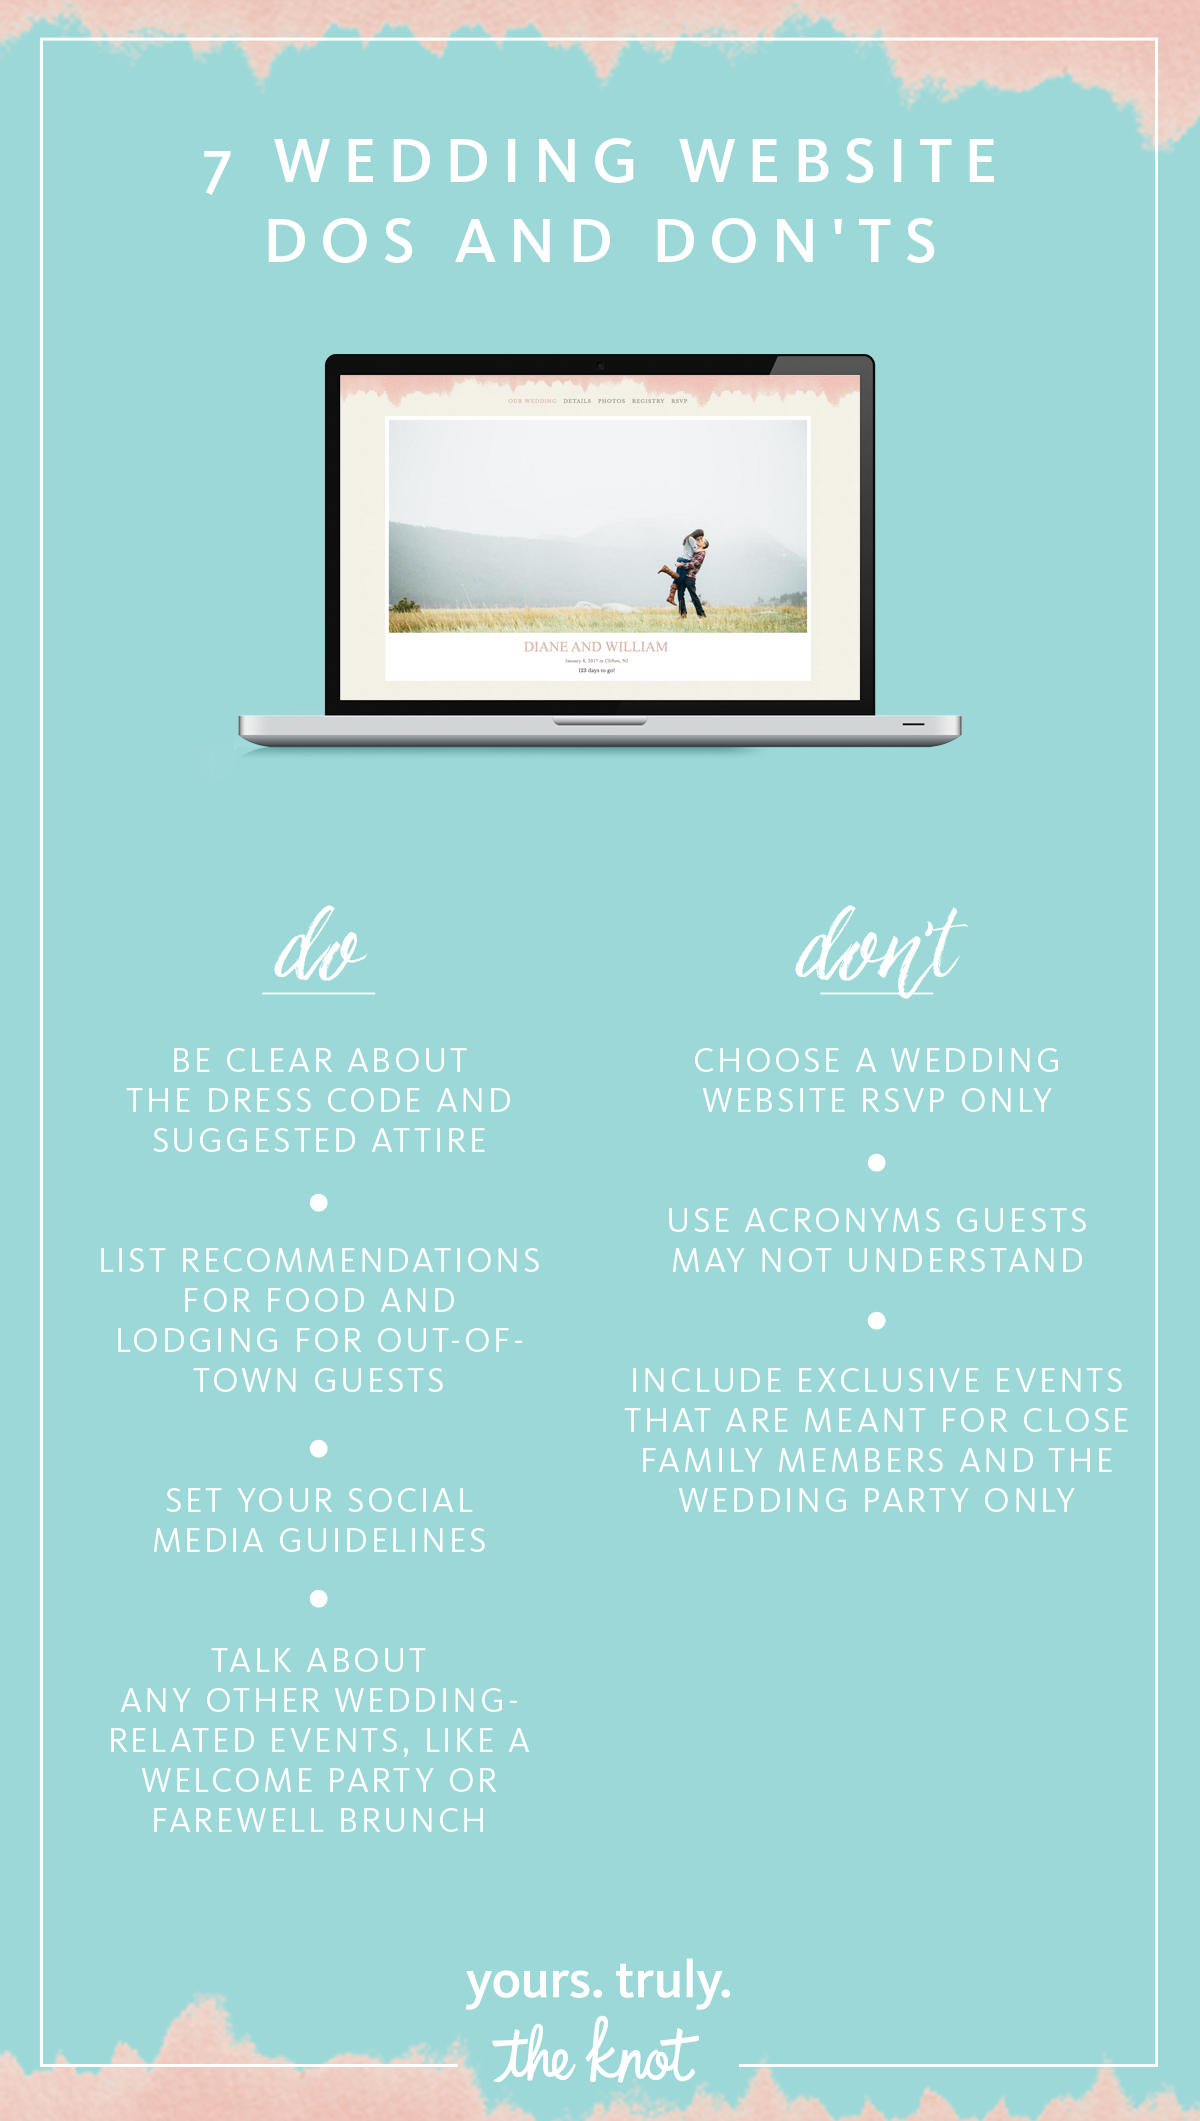 7 Wedding Website Dos and Don'ts Wedding website